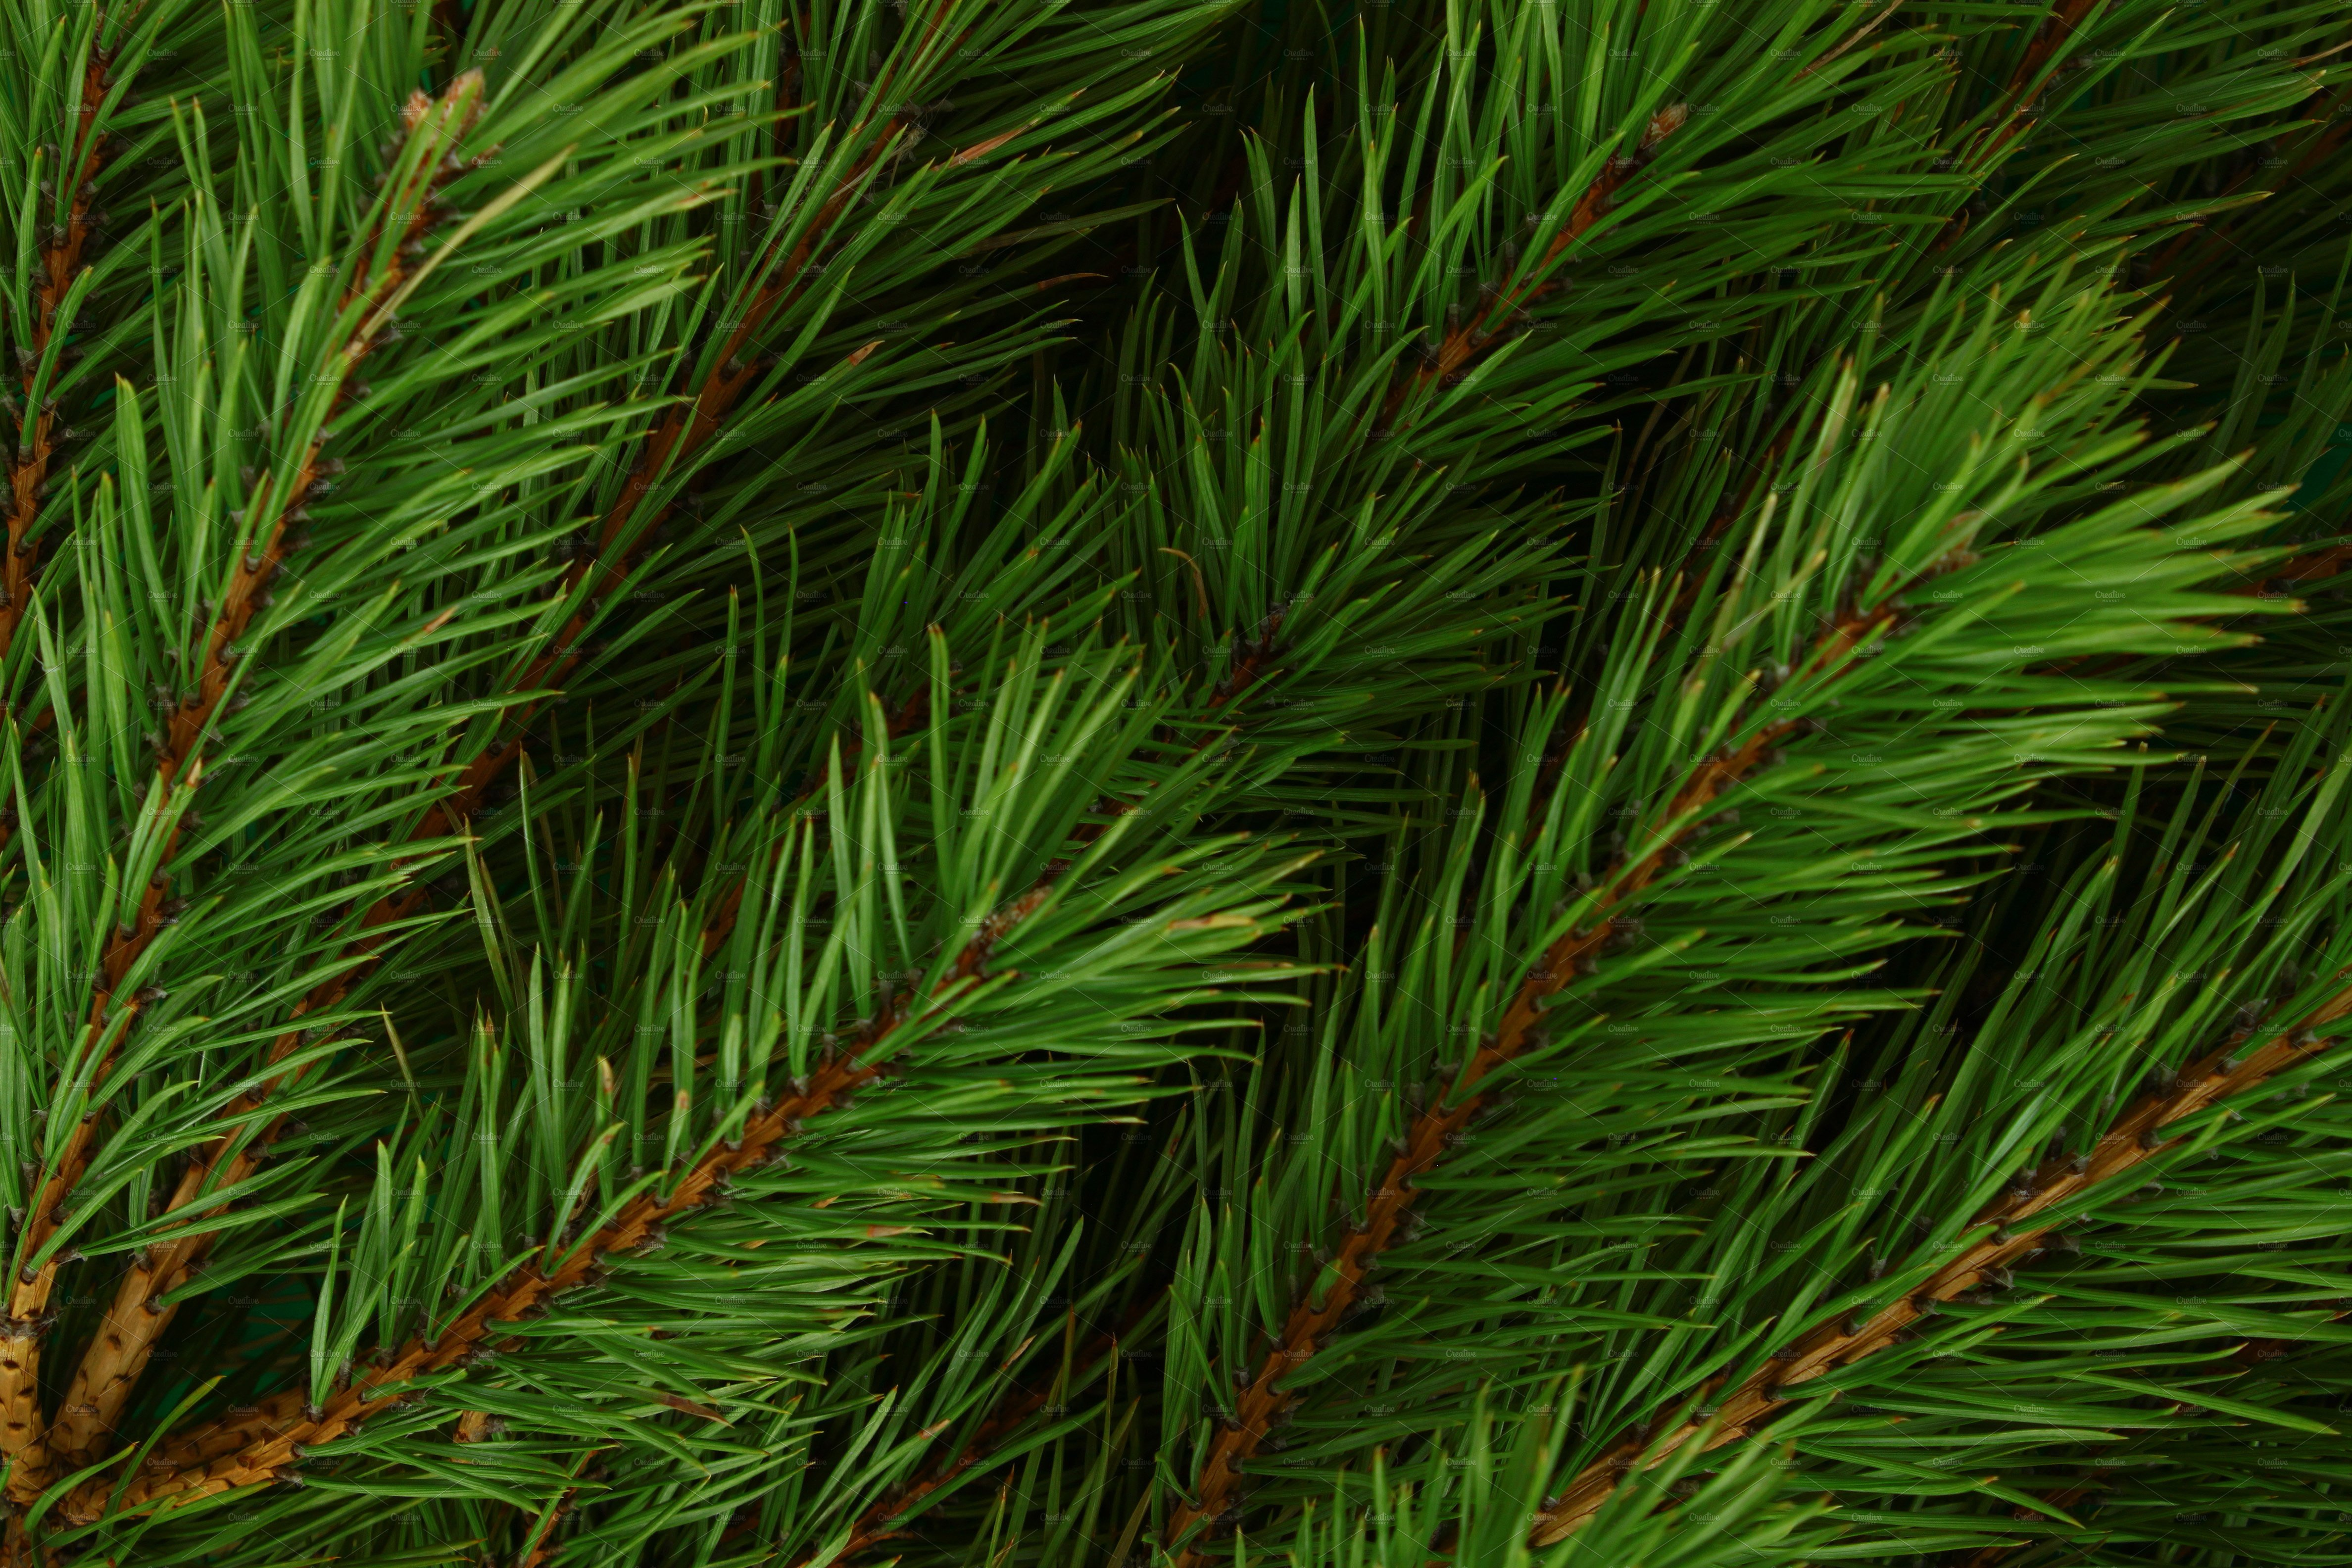 Pine branches photo